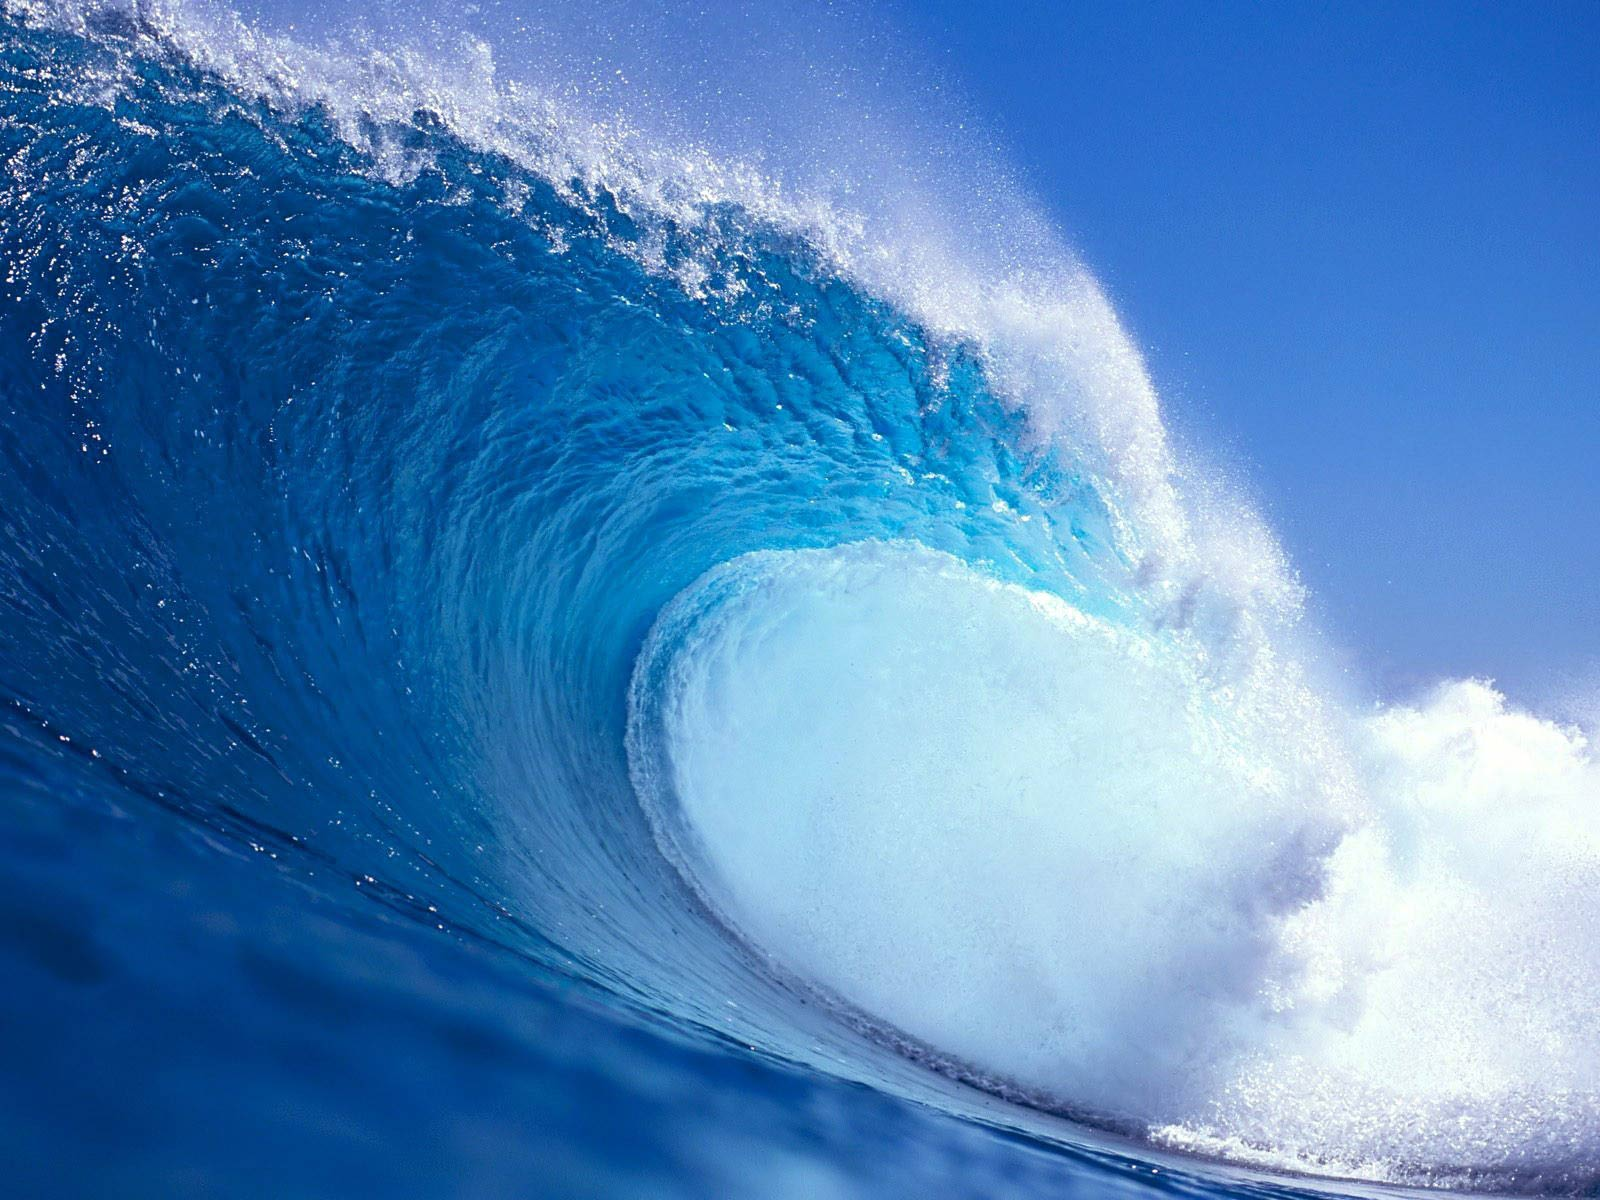 Surfing Wave Wallpapers Surf Wallpapers 1600x1200